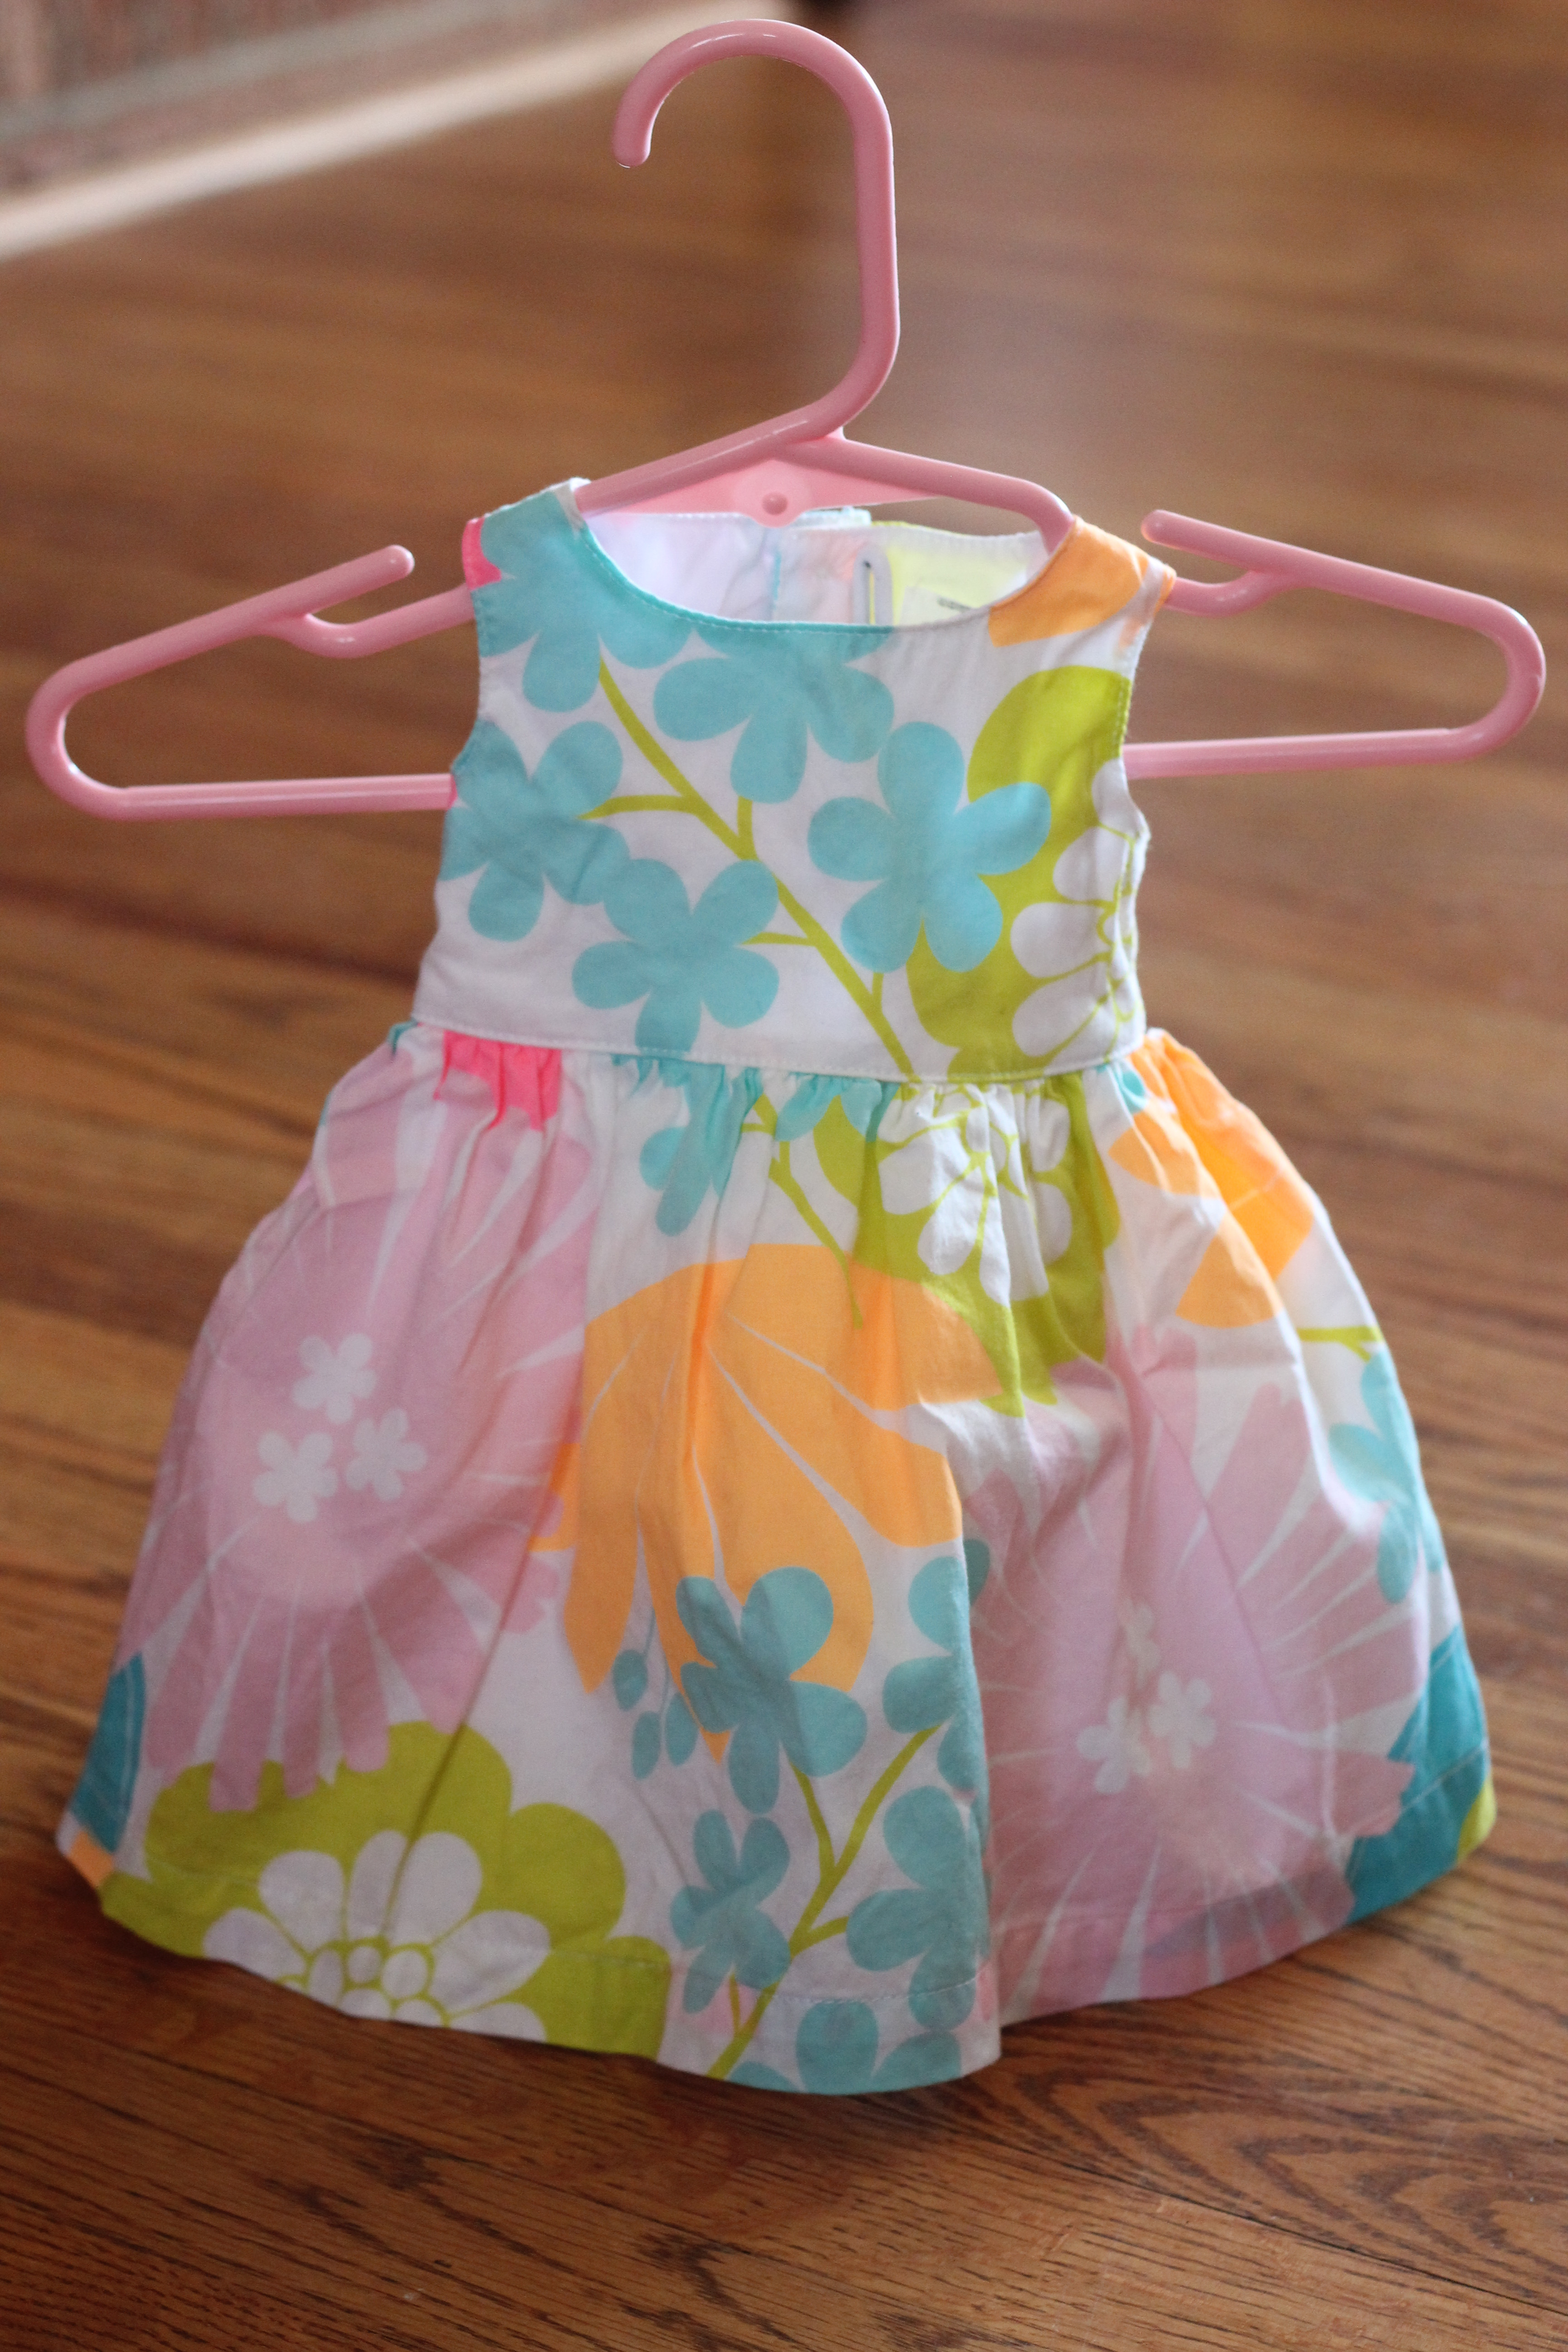 Best ideas about DIY Baby Dresses . Save or Pin DIY Baby Dress Centerpiece Now.